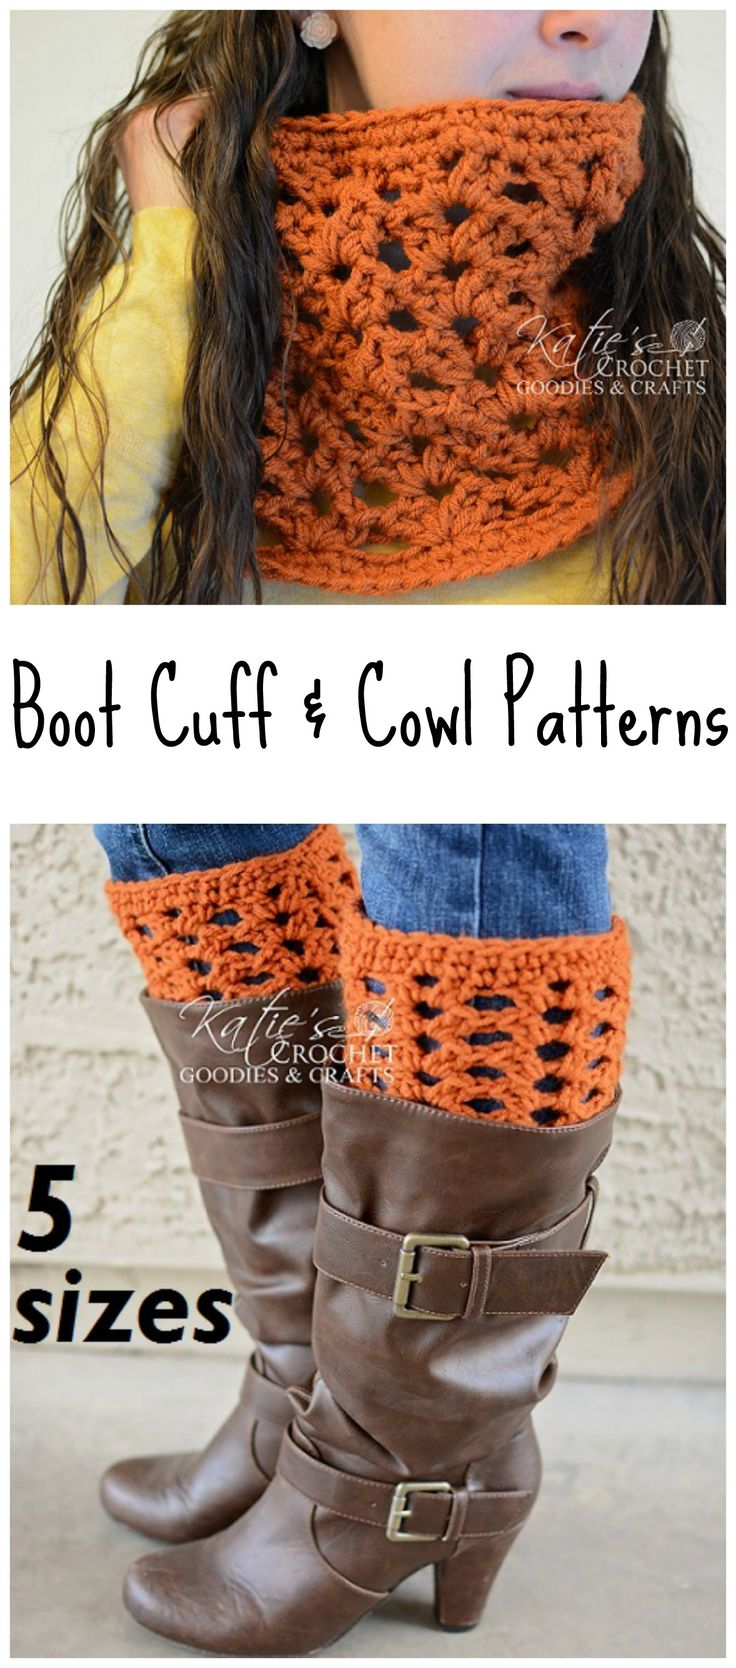 Boot Cuff & Cowl Pattern Set by Katie's Crochet Goodies